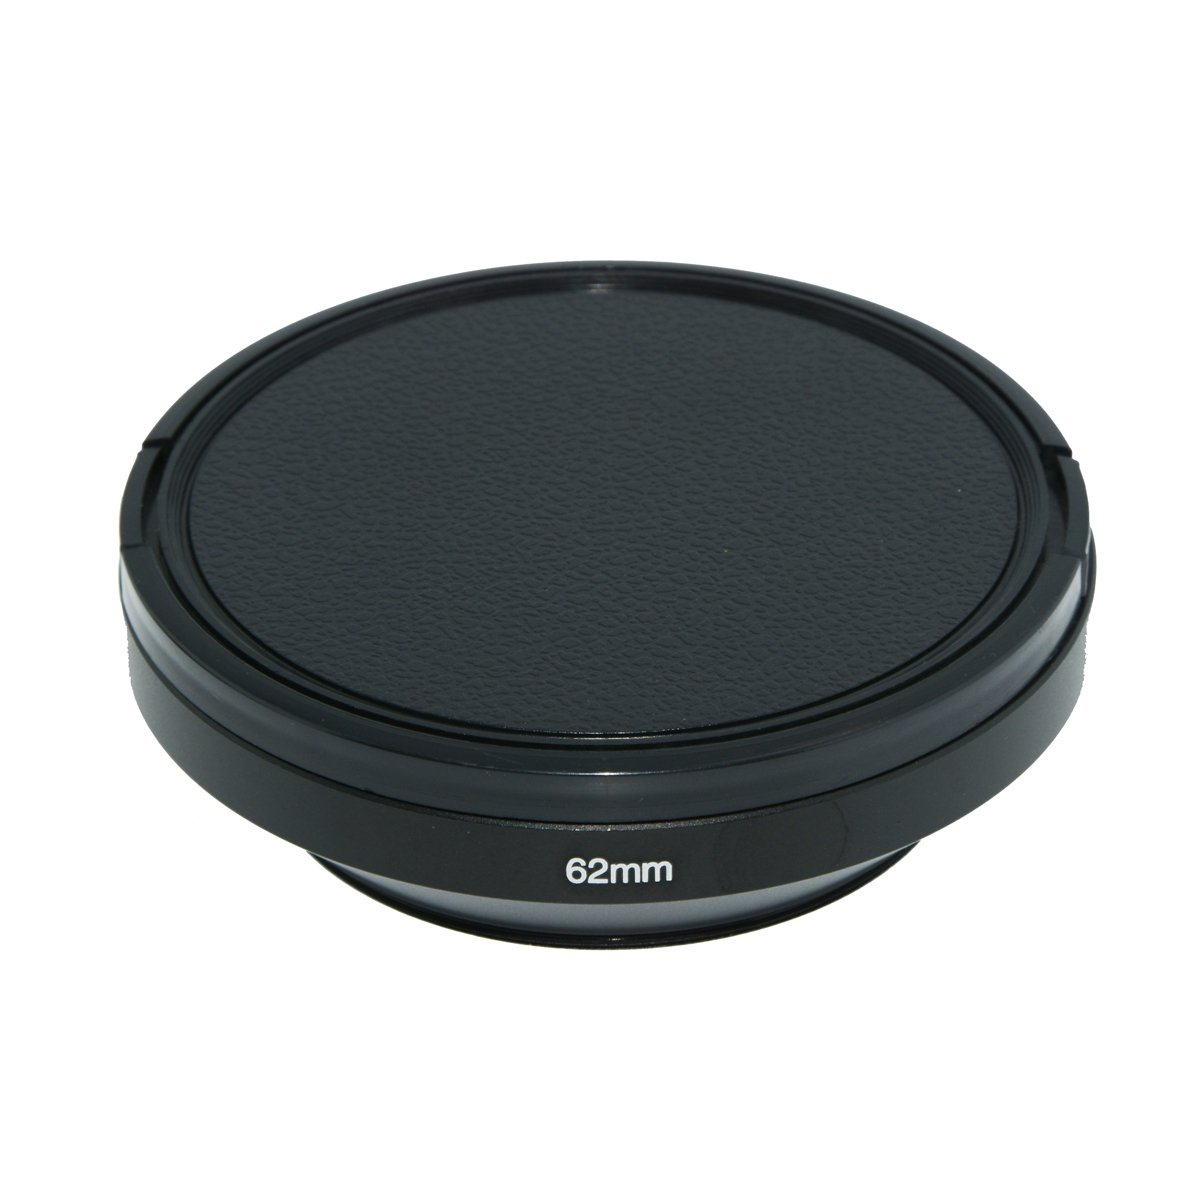 Lens Cap for Nikon Canon Sony Fuji Pentax Sumsung Leica Standard Thread Lens SIOTI Camera Wide Angle Metal Lens Hood 58mm Cleaning Cloth